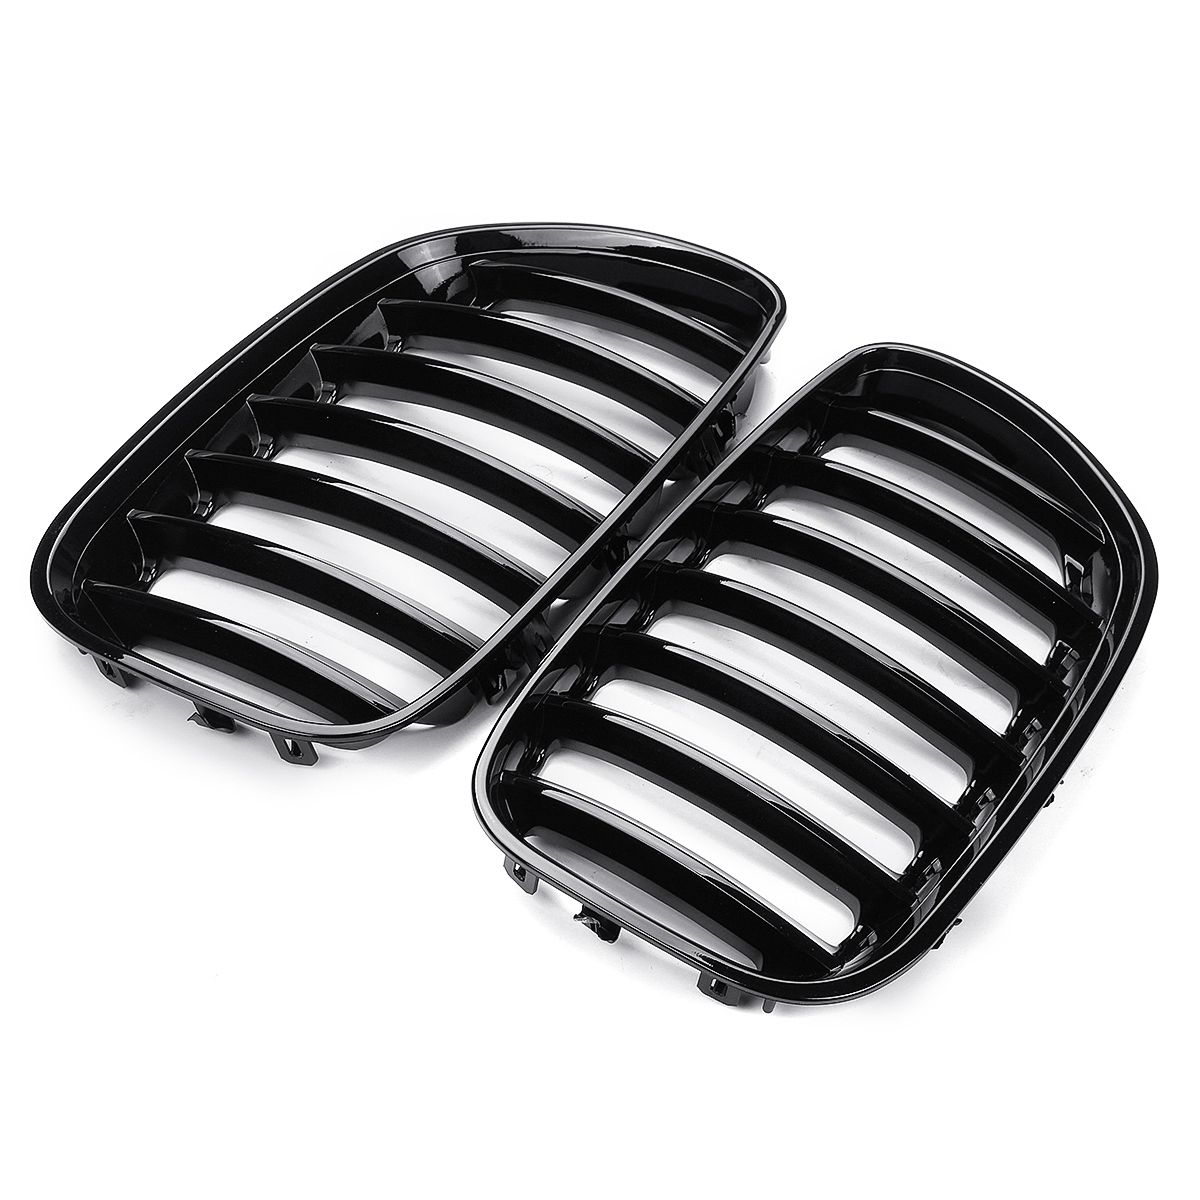 Image 2 - 2Pcs Gloss Black Car Front Kidney Grill Grilles Right & Left for BMW X5 E53 2004 2005 2006 ABS 51137124815 51137124816-in Racing Grills from Automobiles & Motorcycles